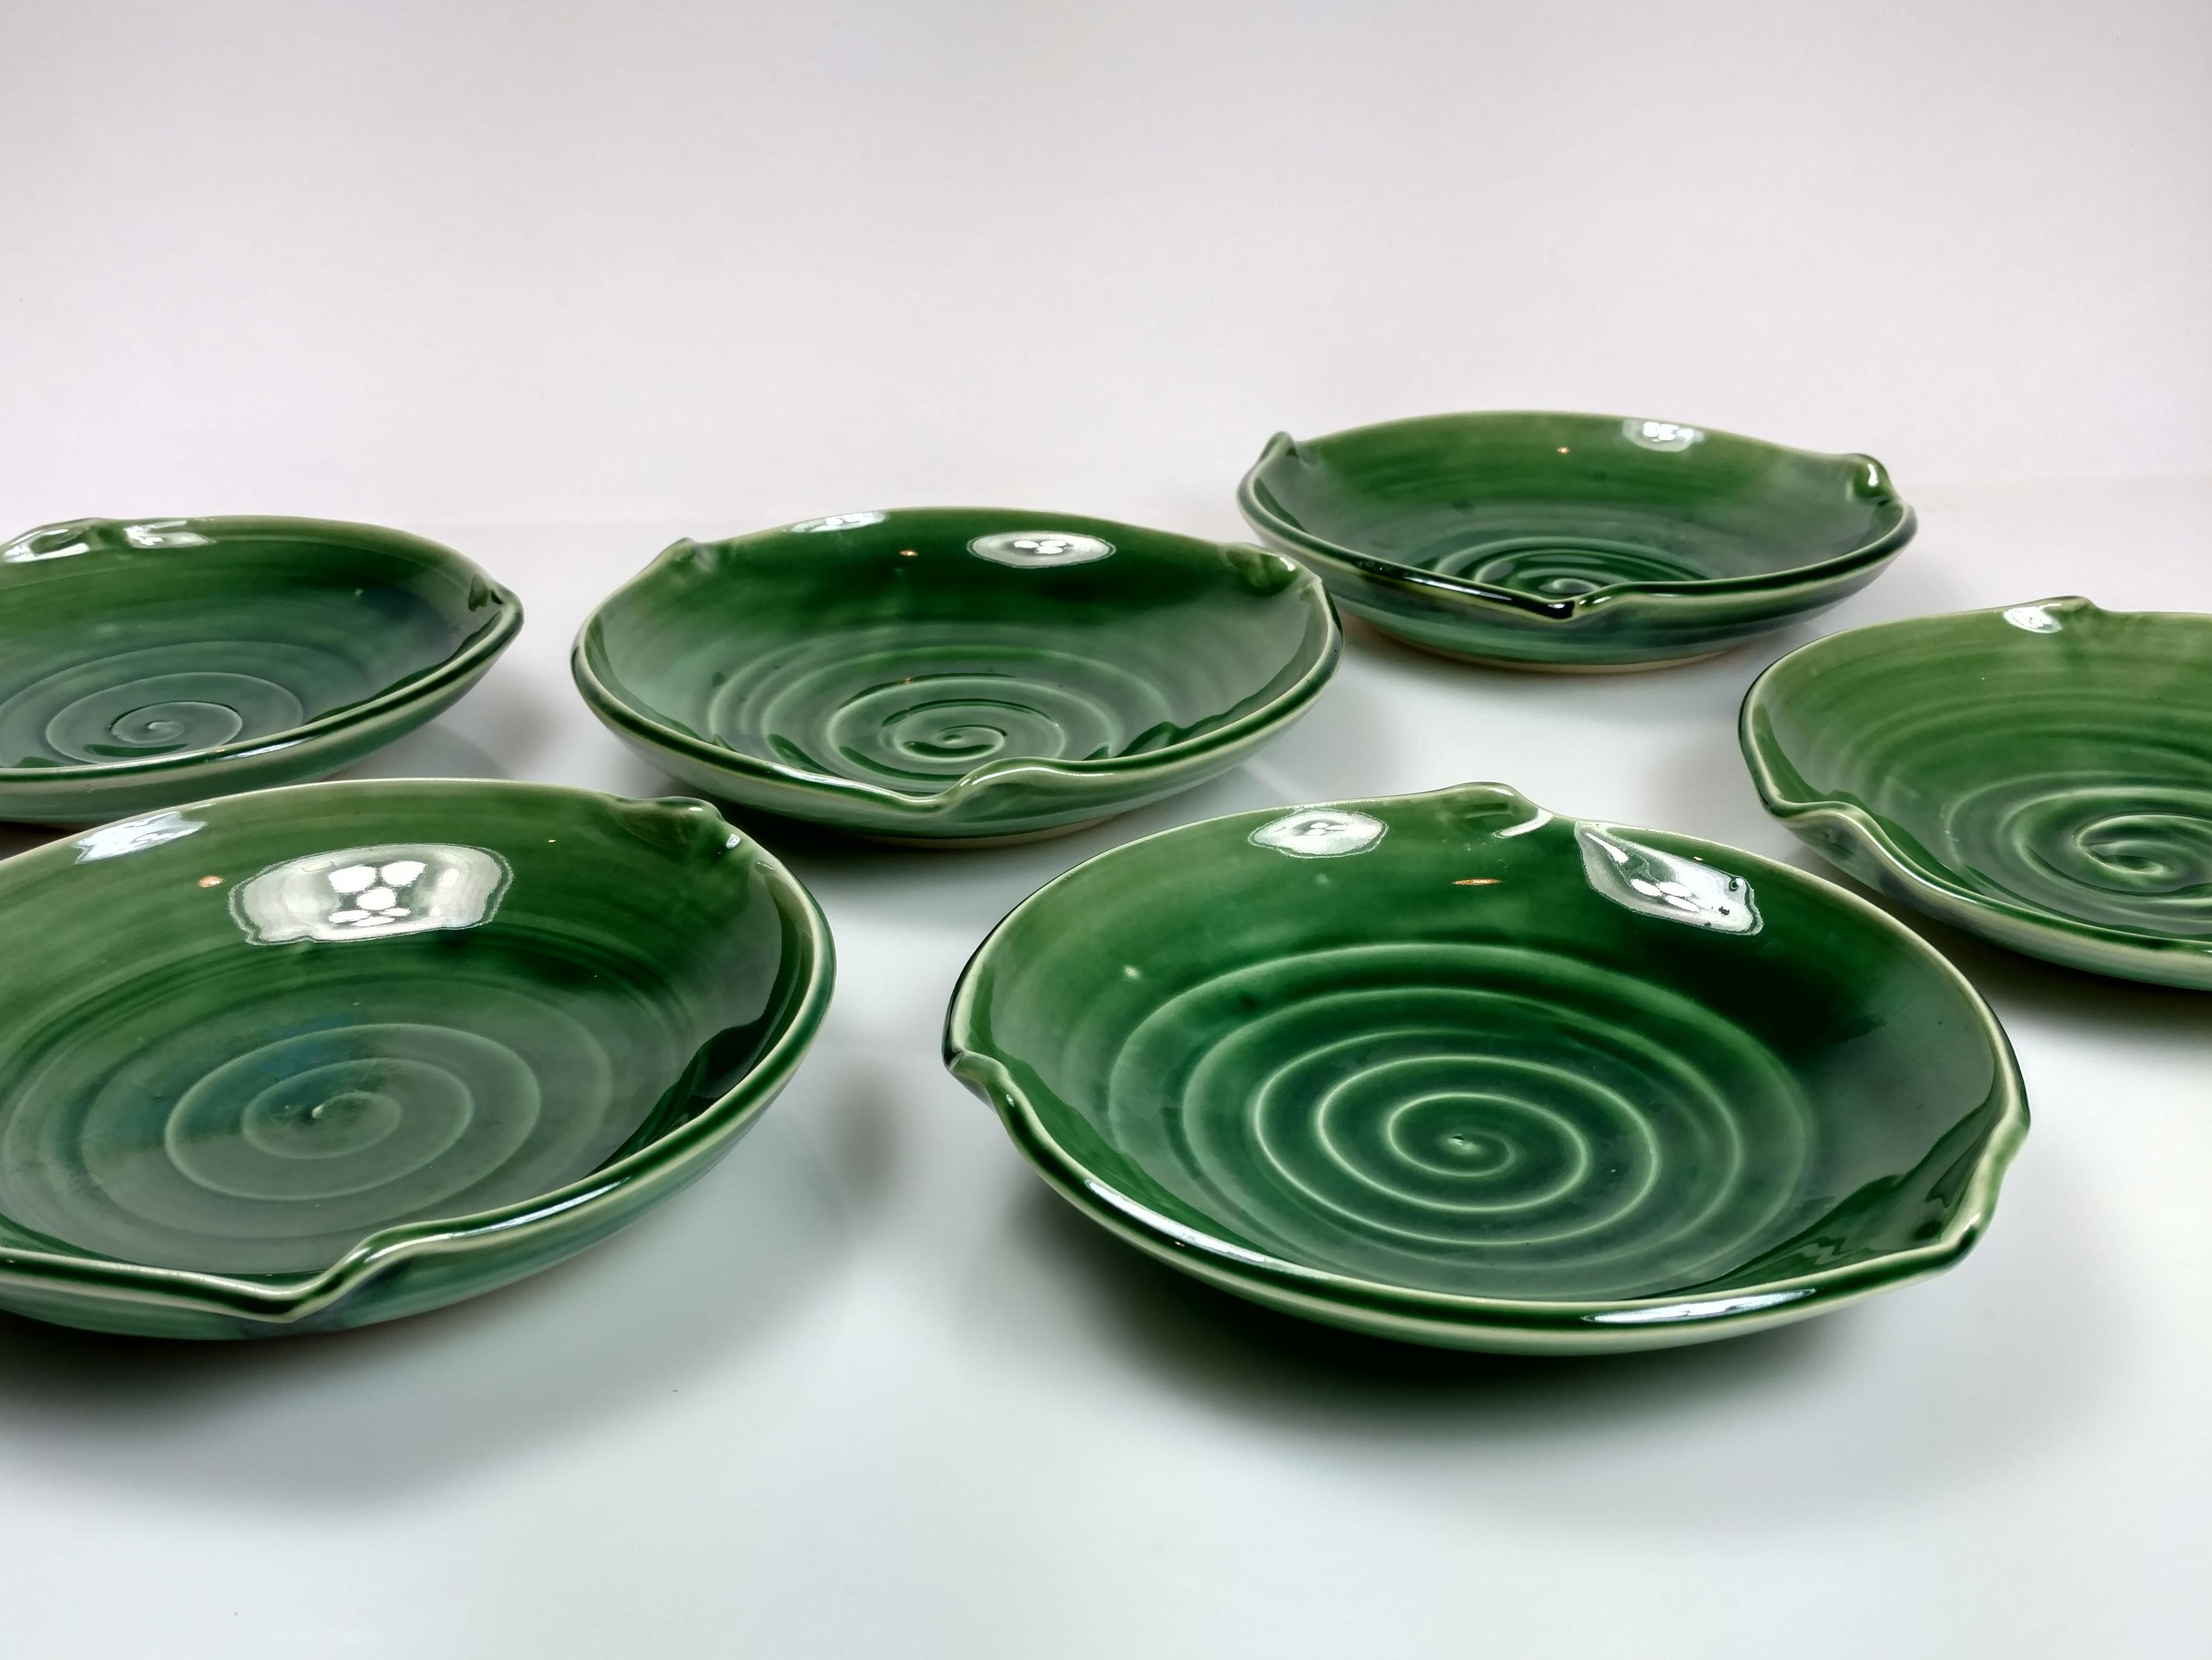 Small Green Wave Plate by Hollow Work // Price: $28 each // Buy online // www.hollowwork.com // (Image: Hollow Work)